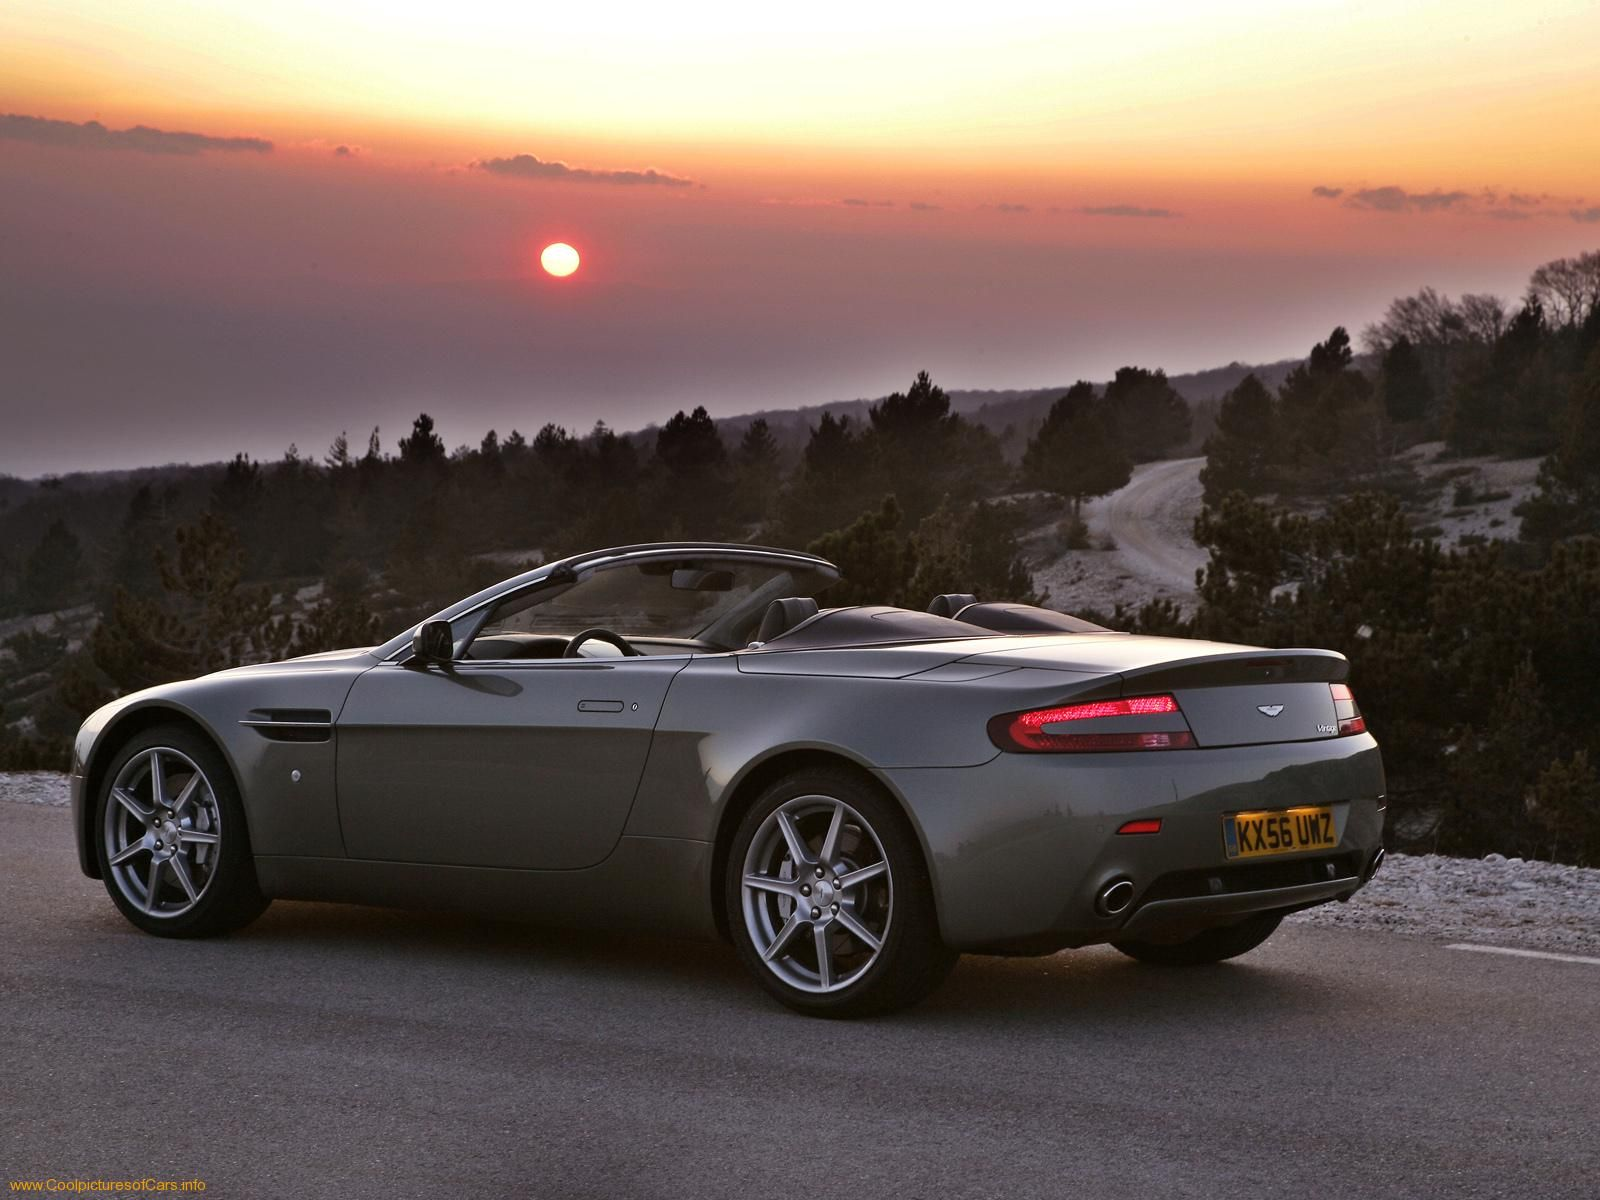 The Sound Of The Aston Martin V8 Vantage Convertible S Exhaust Is So Wonderful We Can Listen To It All Day Aston Martin Aston Martin V8 Aston